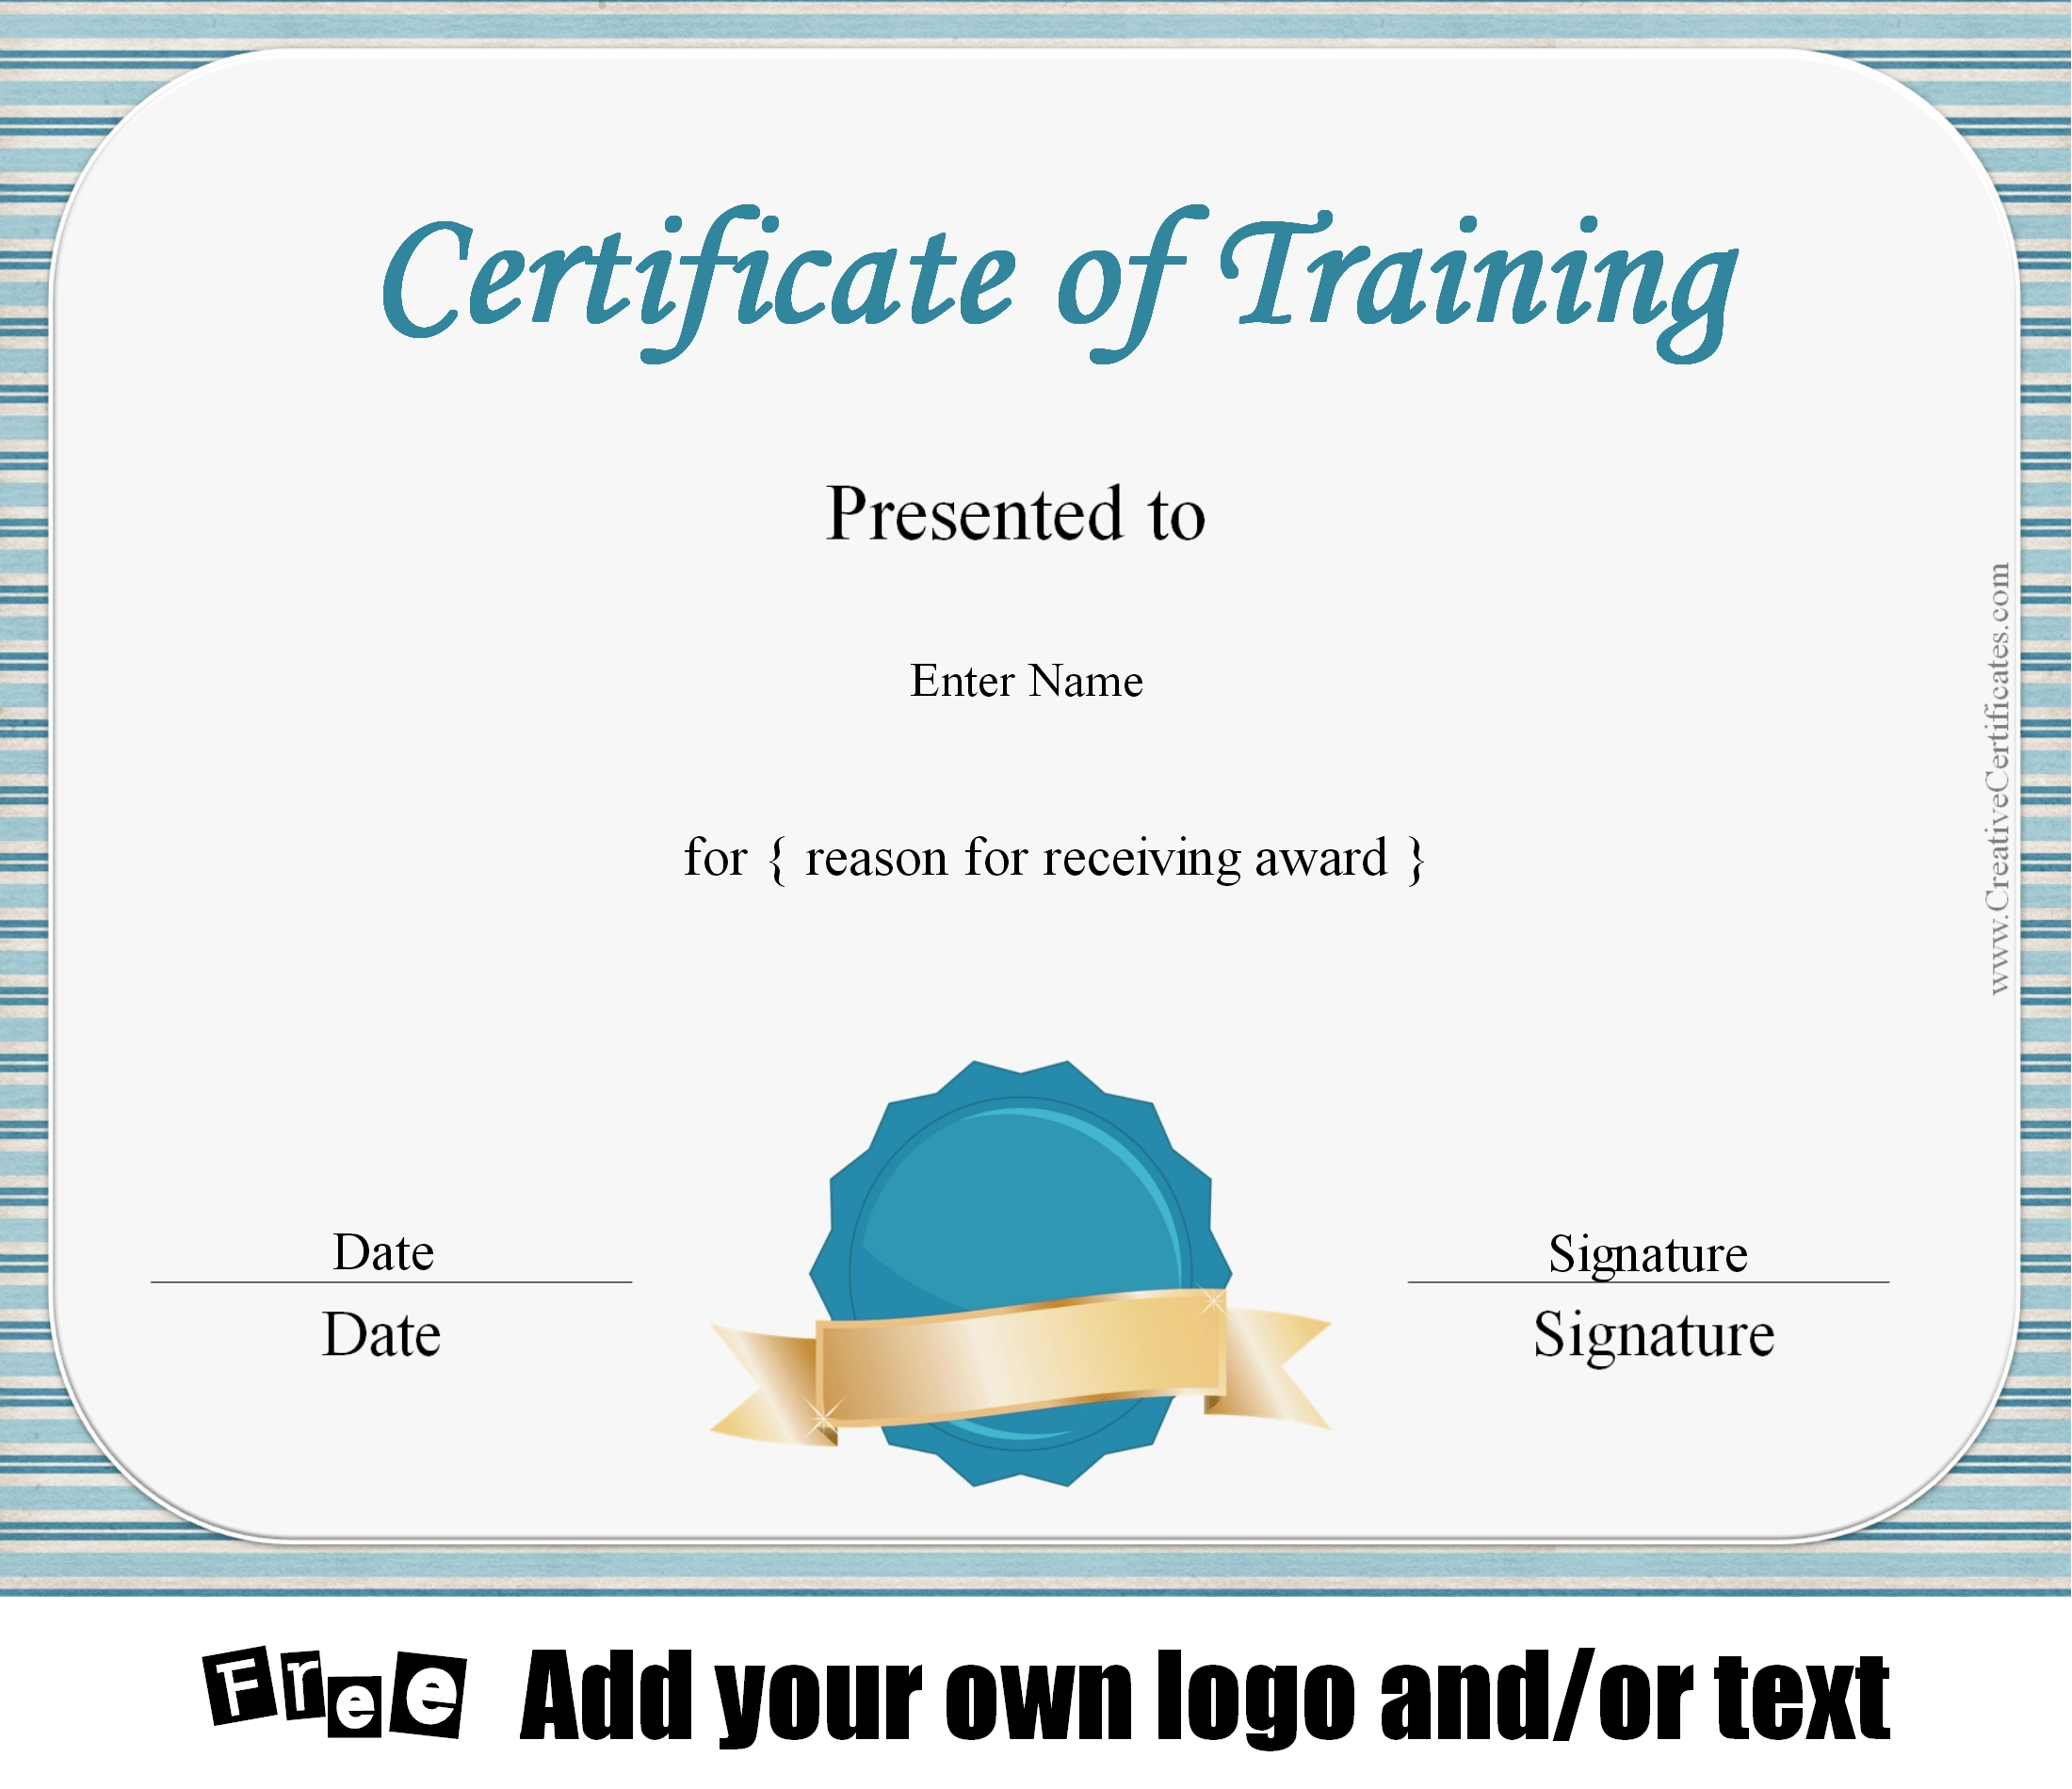 Hipaa Training Certificate Template